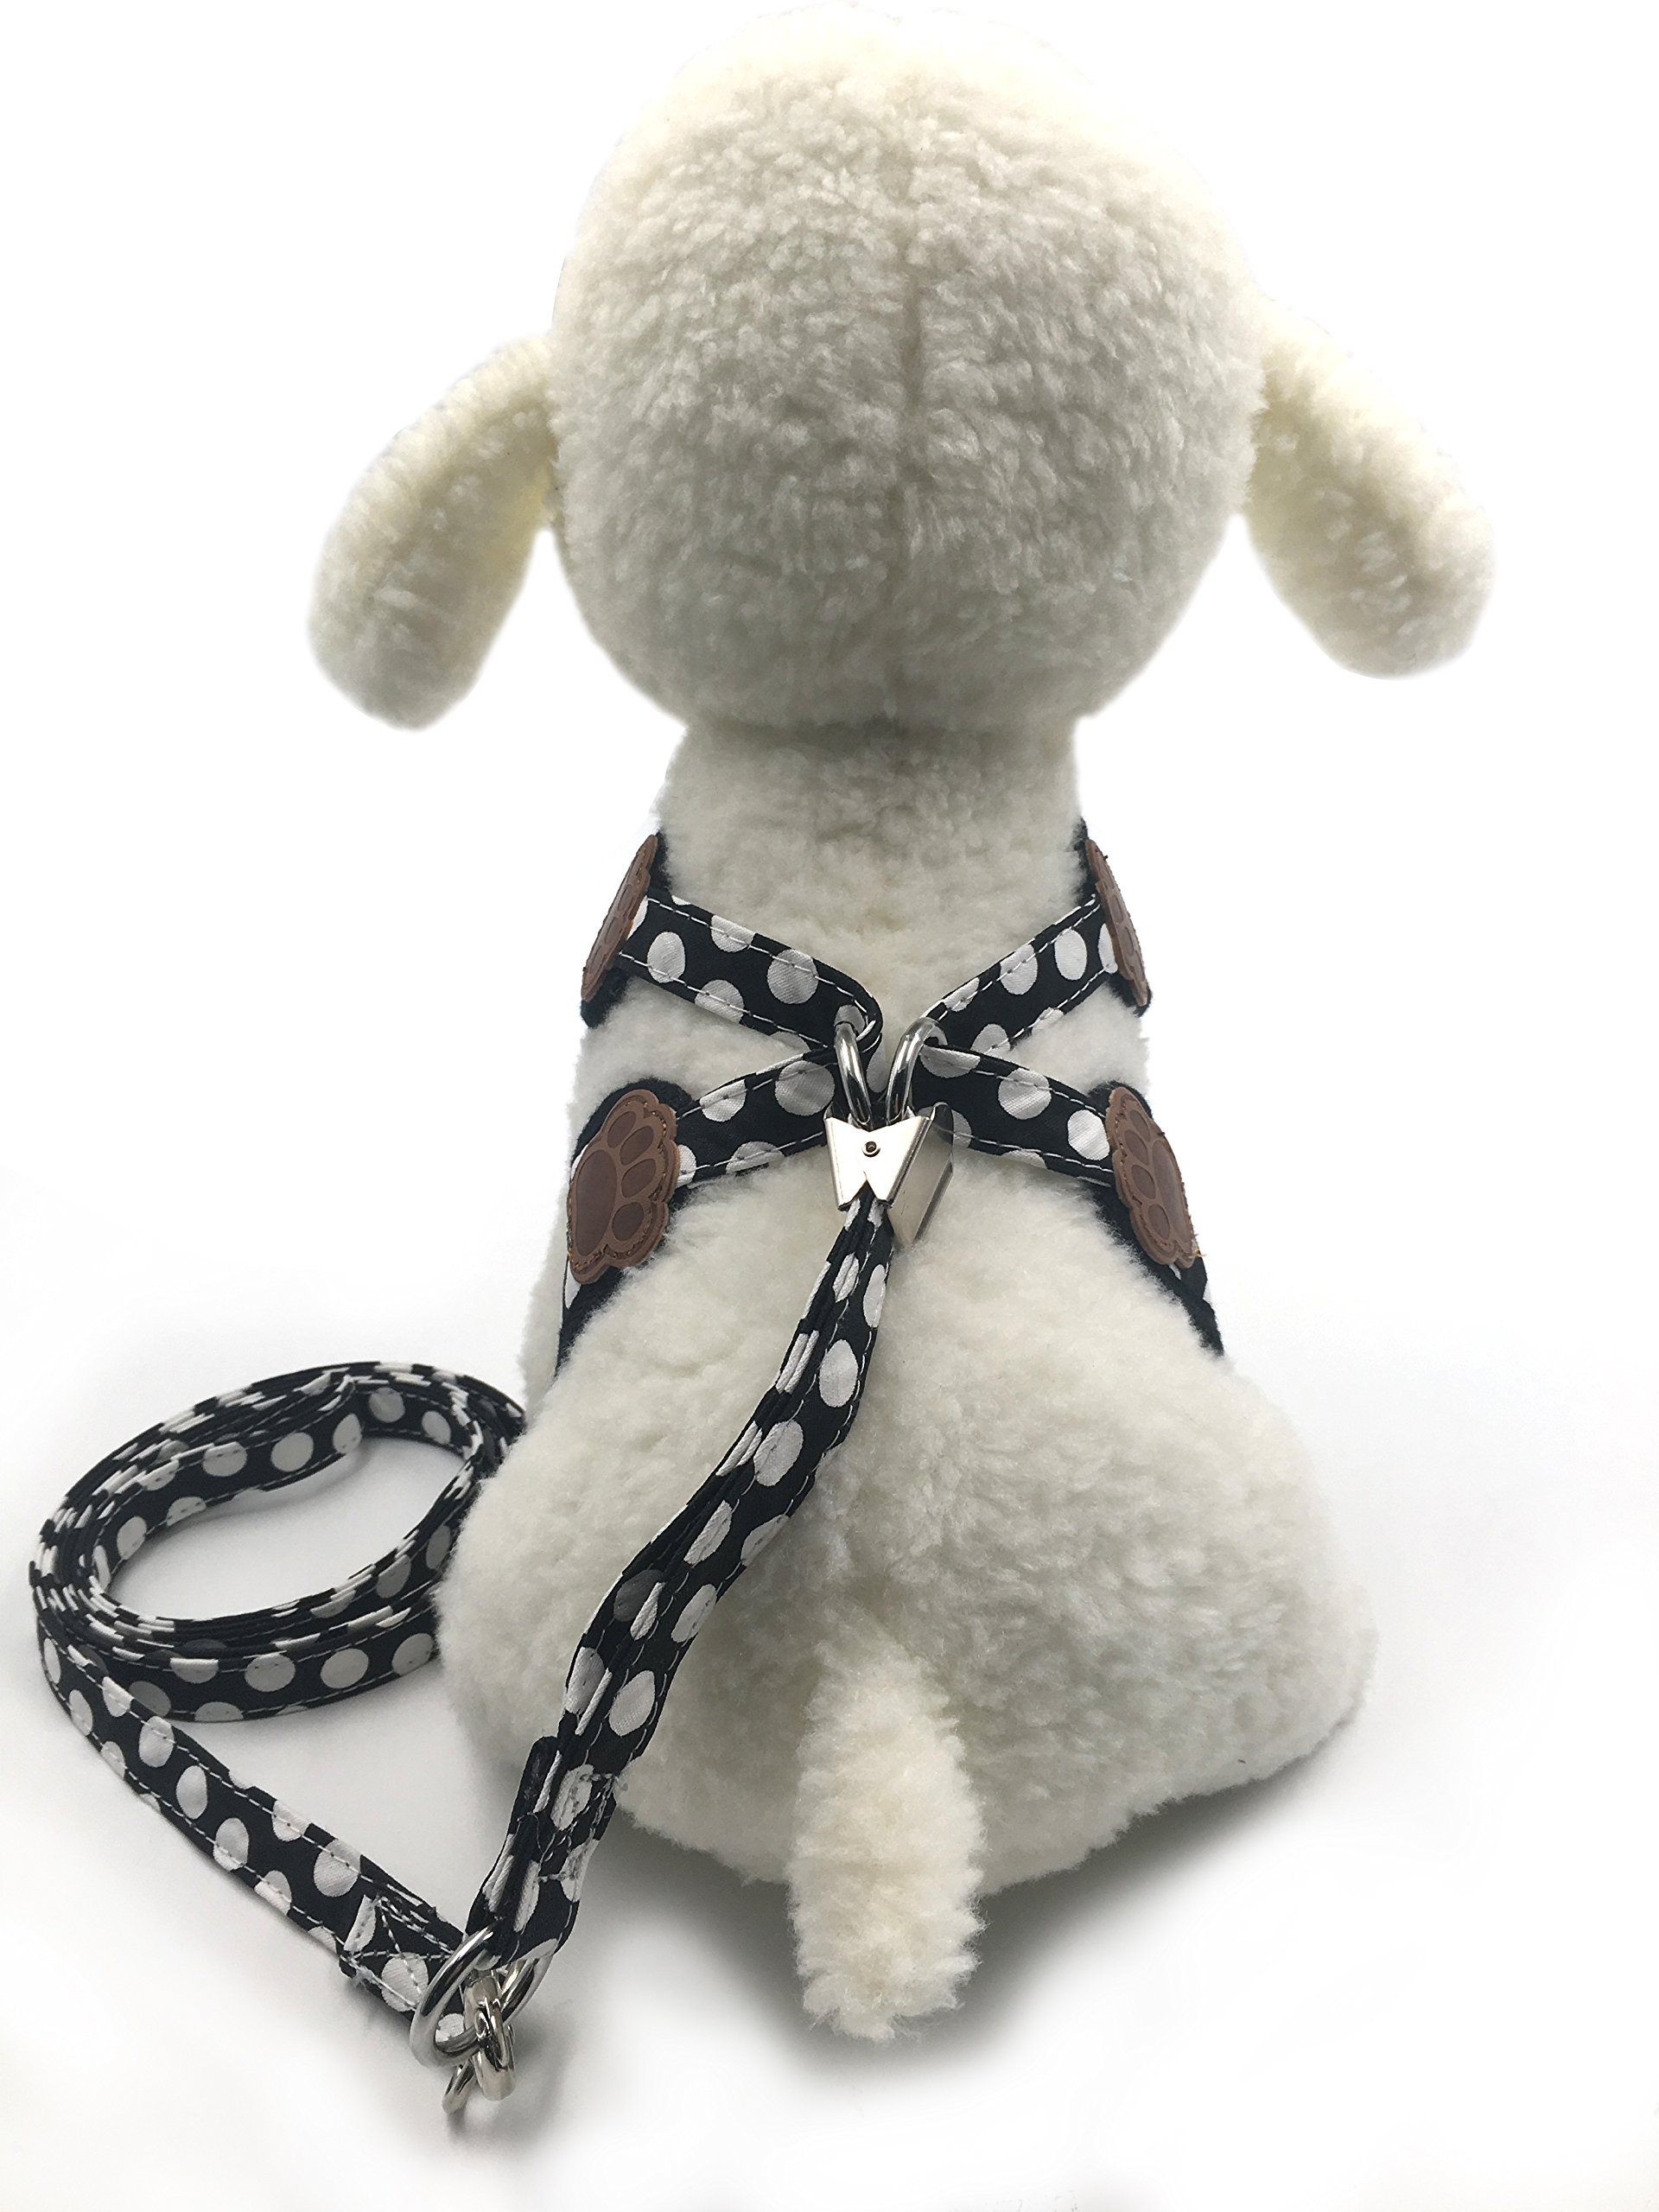 Puppy Harness and Leash for Small Dog Soft Mesh Pet Vest Black XS by KOOLTAIL (Image #6)